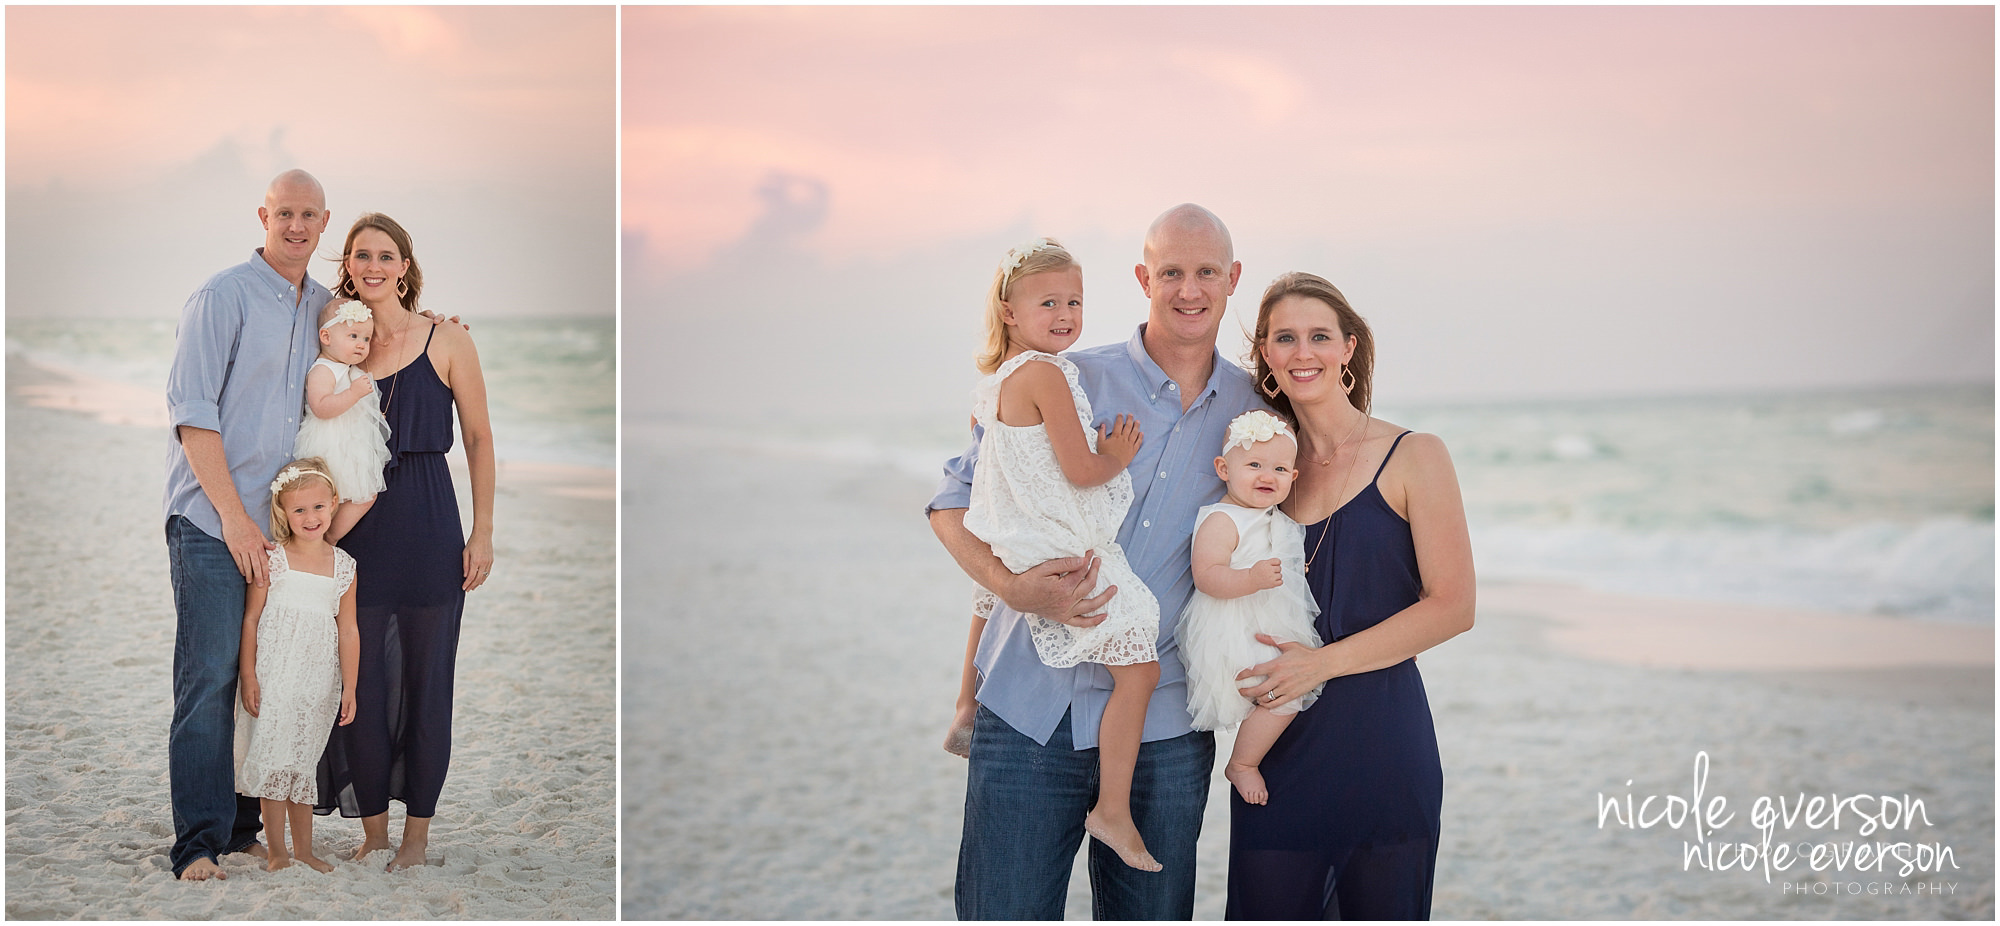 family photo photographed near Seaside FL family photographer wearing grey and navy blue